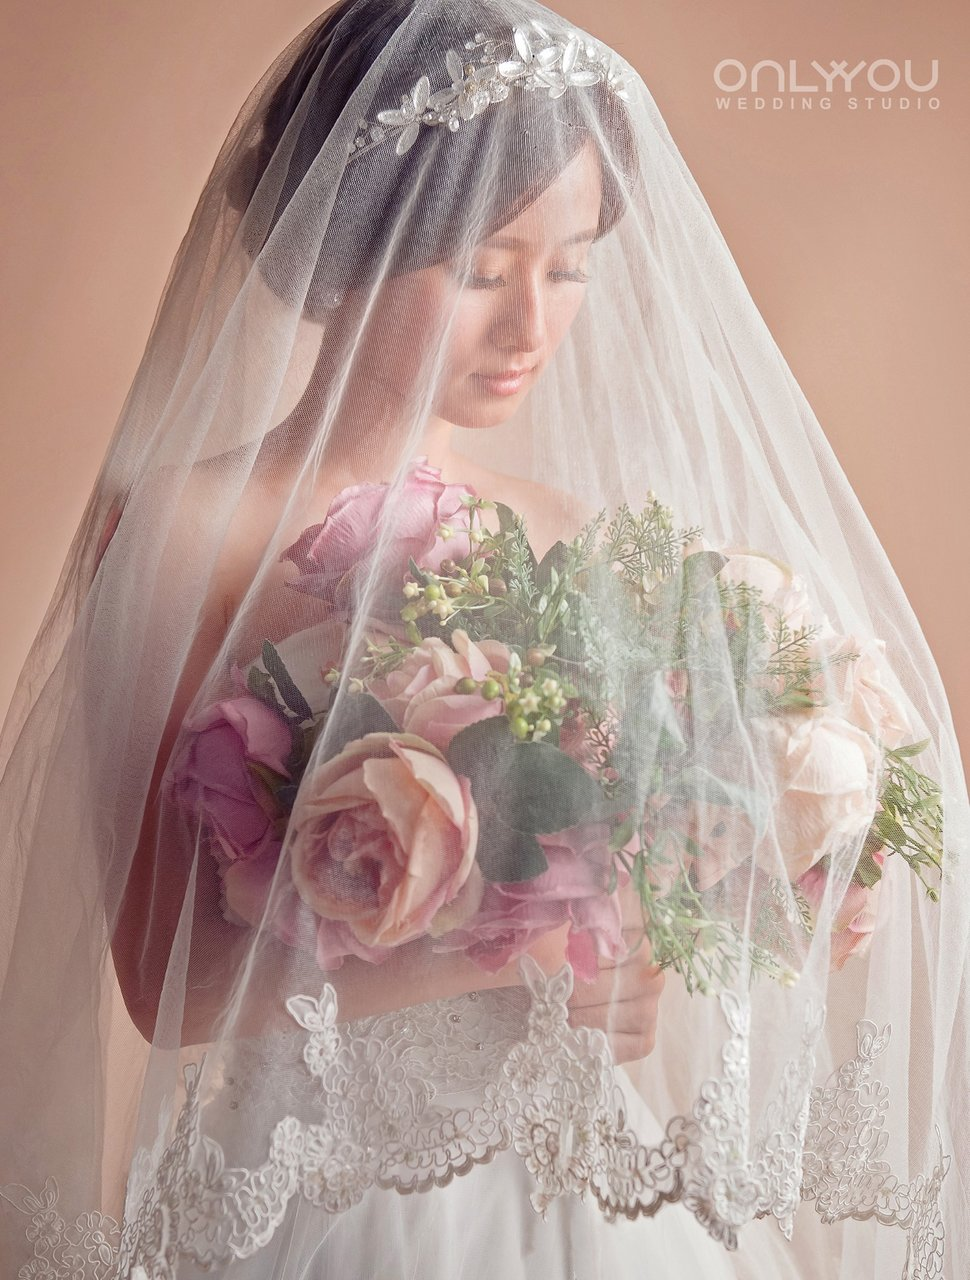 91316707_2794160147306280_6652627453552361472_o - ONLY YOU 唯你婚紗攝影《結婚吧》